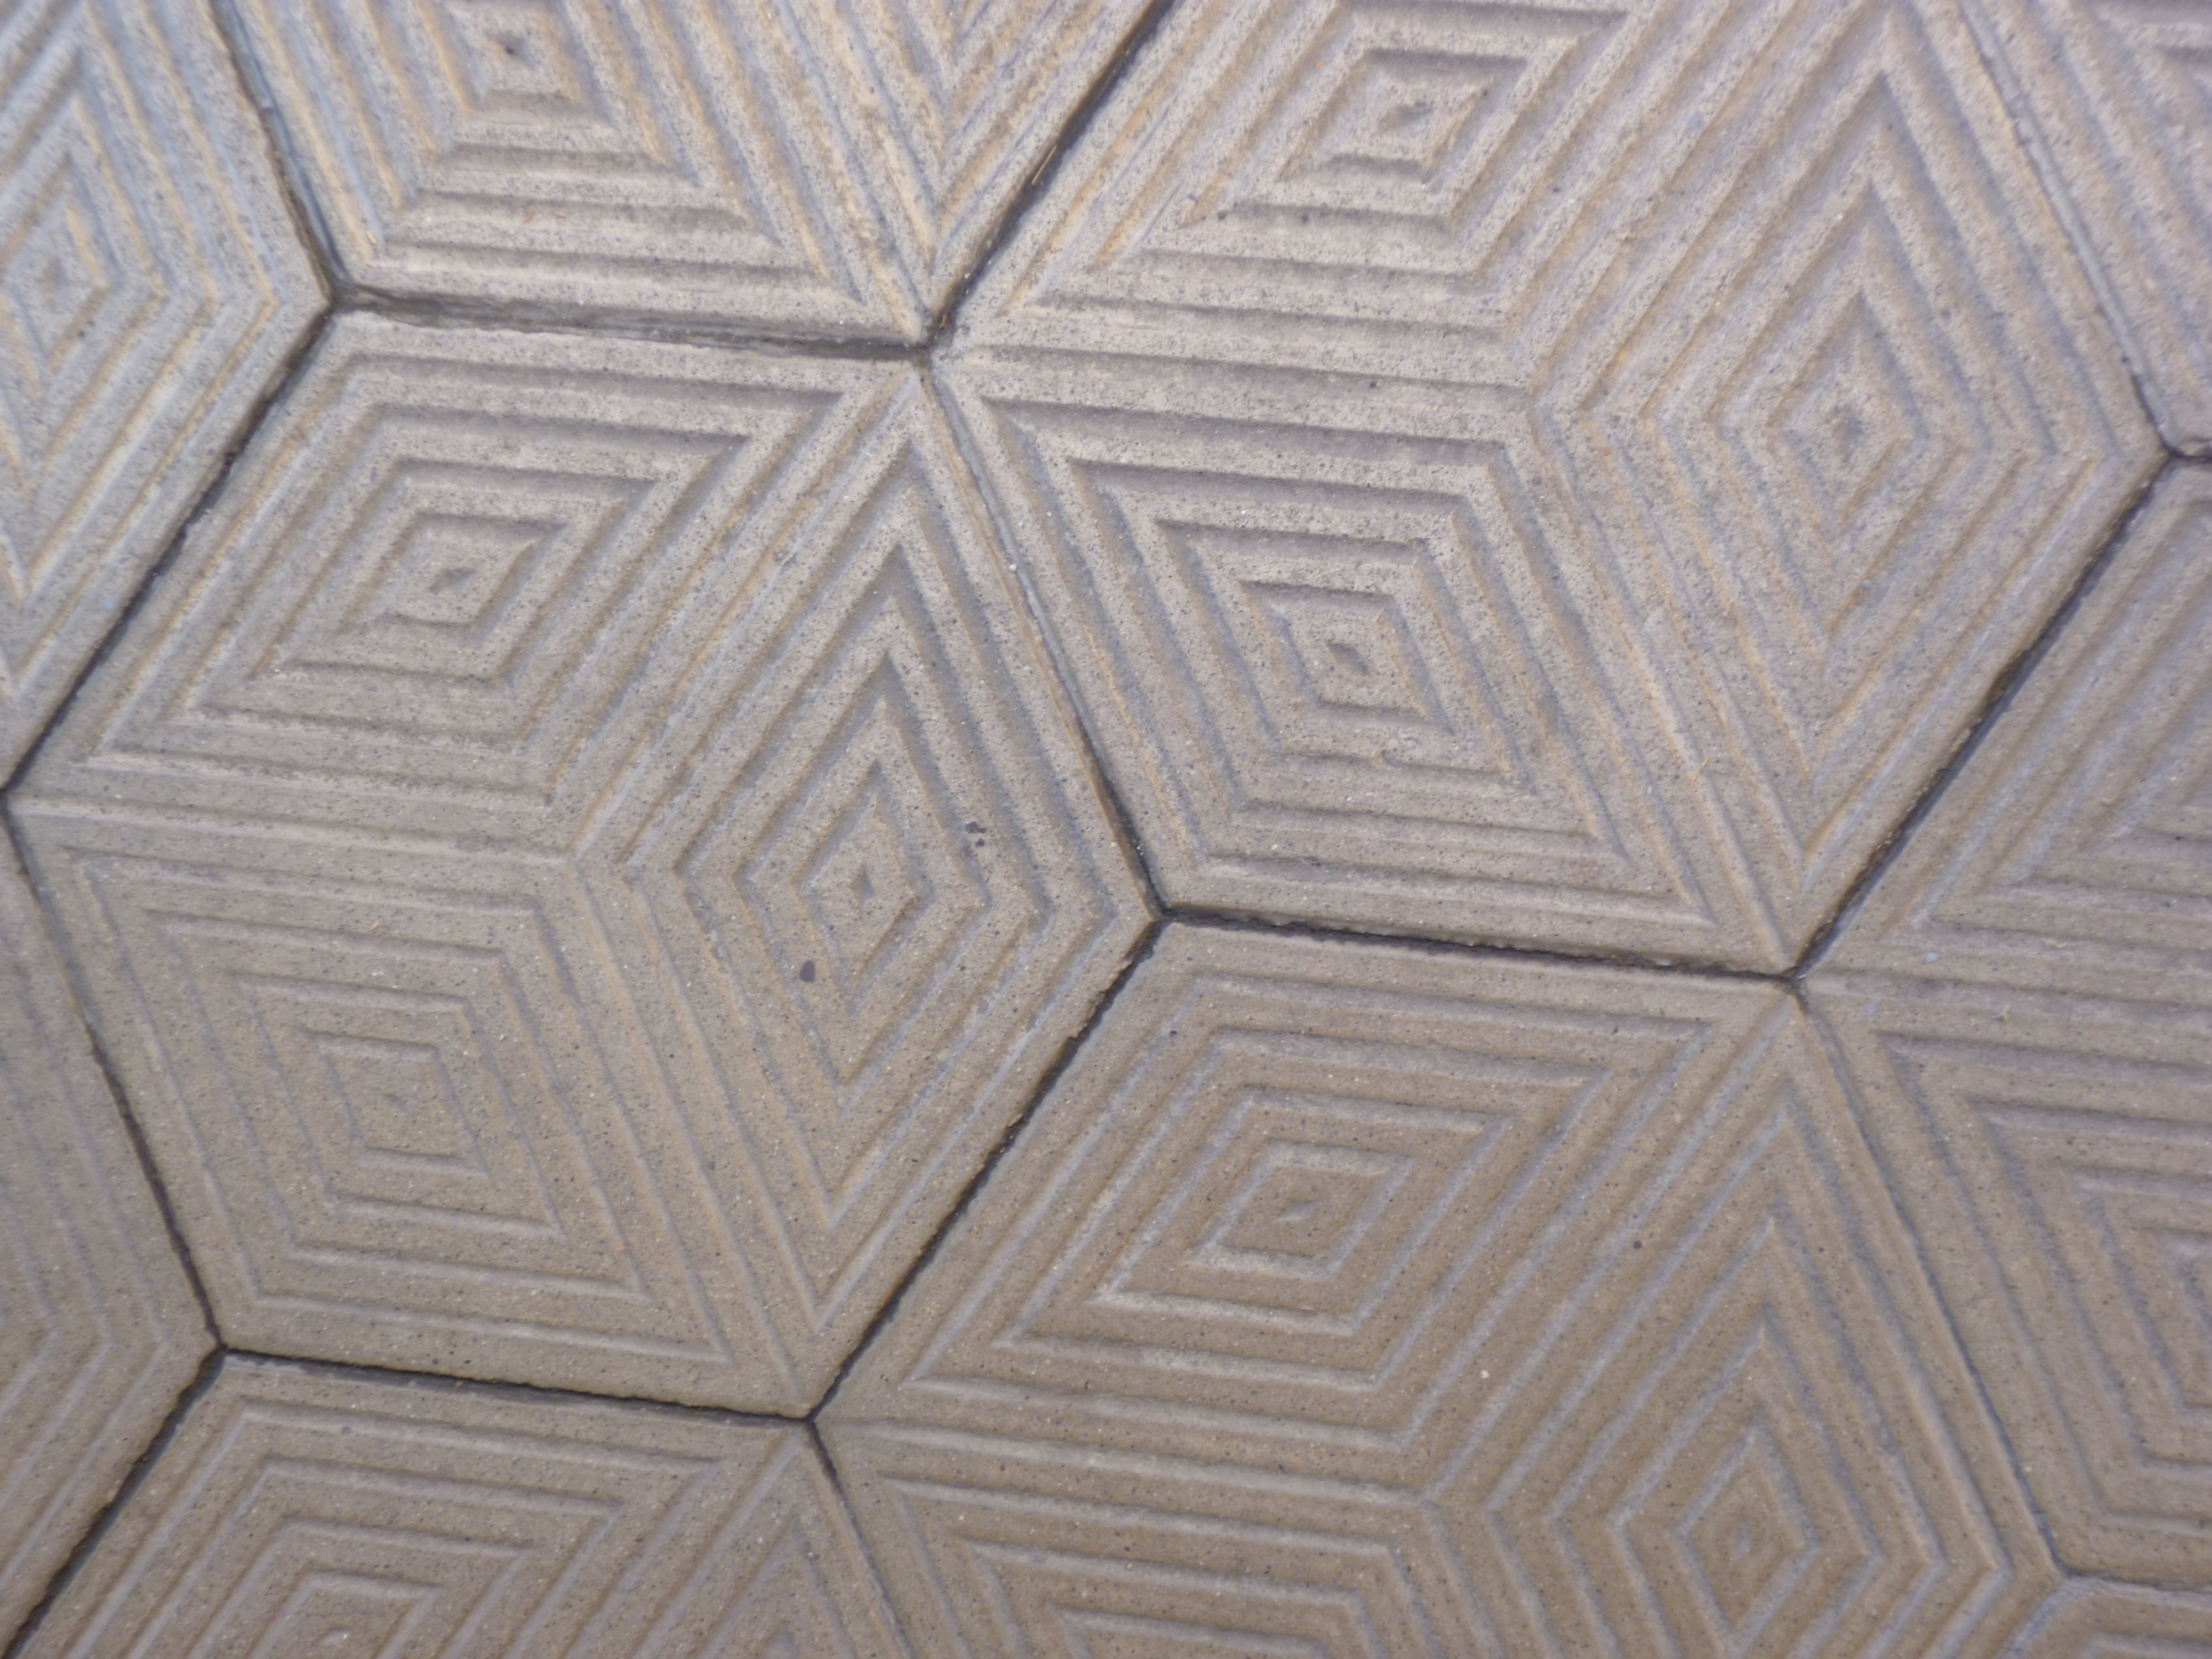 Geometric hexagonal tile handmade tiles can be colour coordinated geometric hexagonal tile handmade tiles can be colour coordinated and customized re shape texture dailygadgetfo Gallery